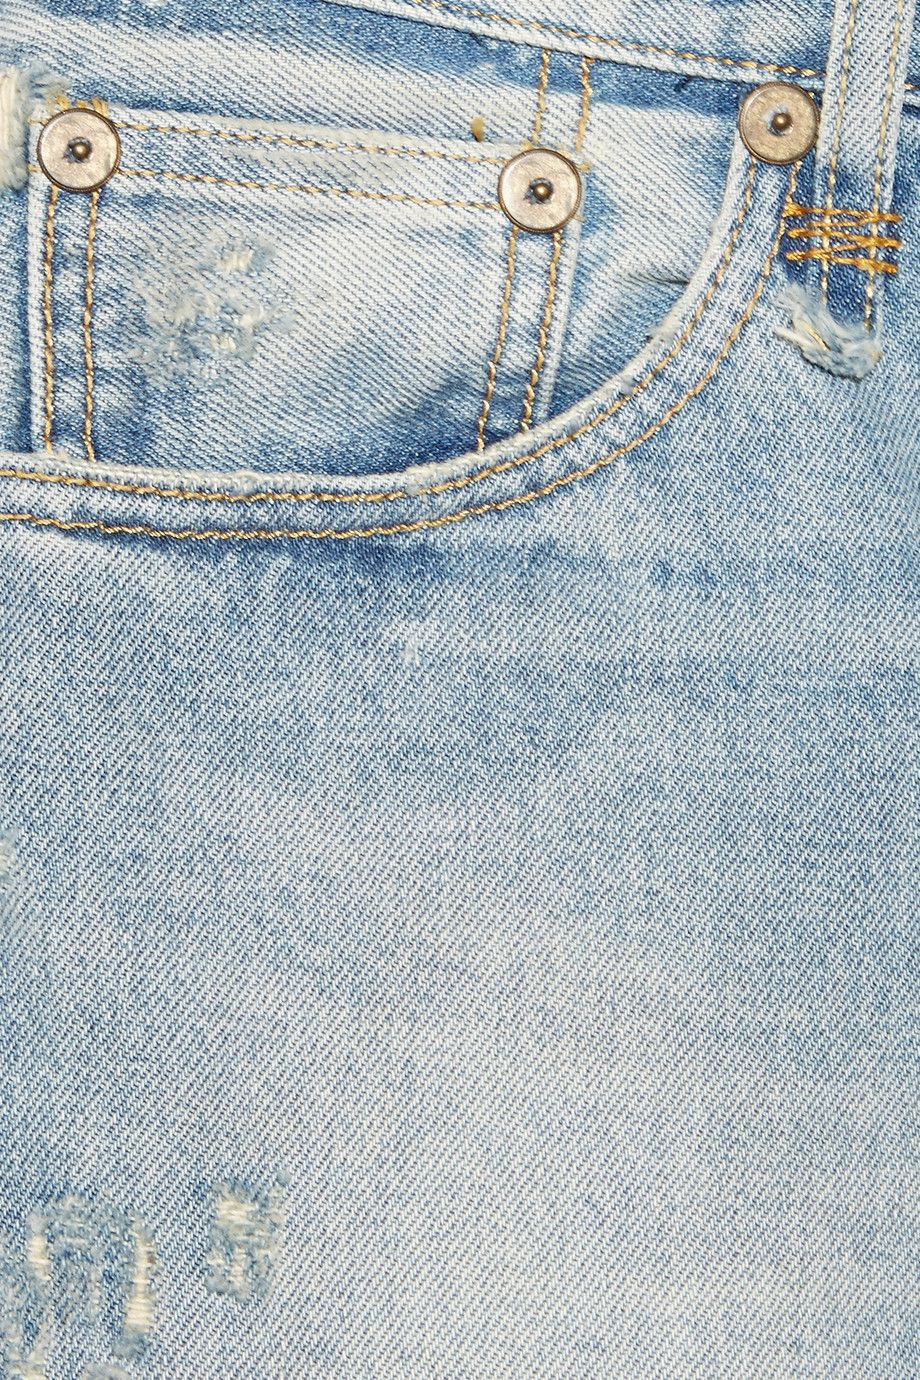 Light-blue stretch-denim Button and concealed zip fastening at front 100% cotton Machine wash Designer wash: Portsmouth Made in Italy